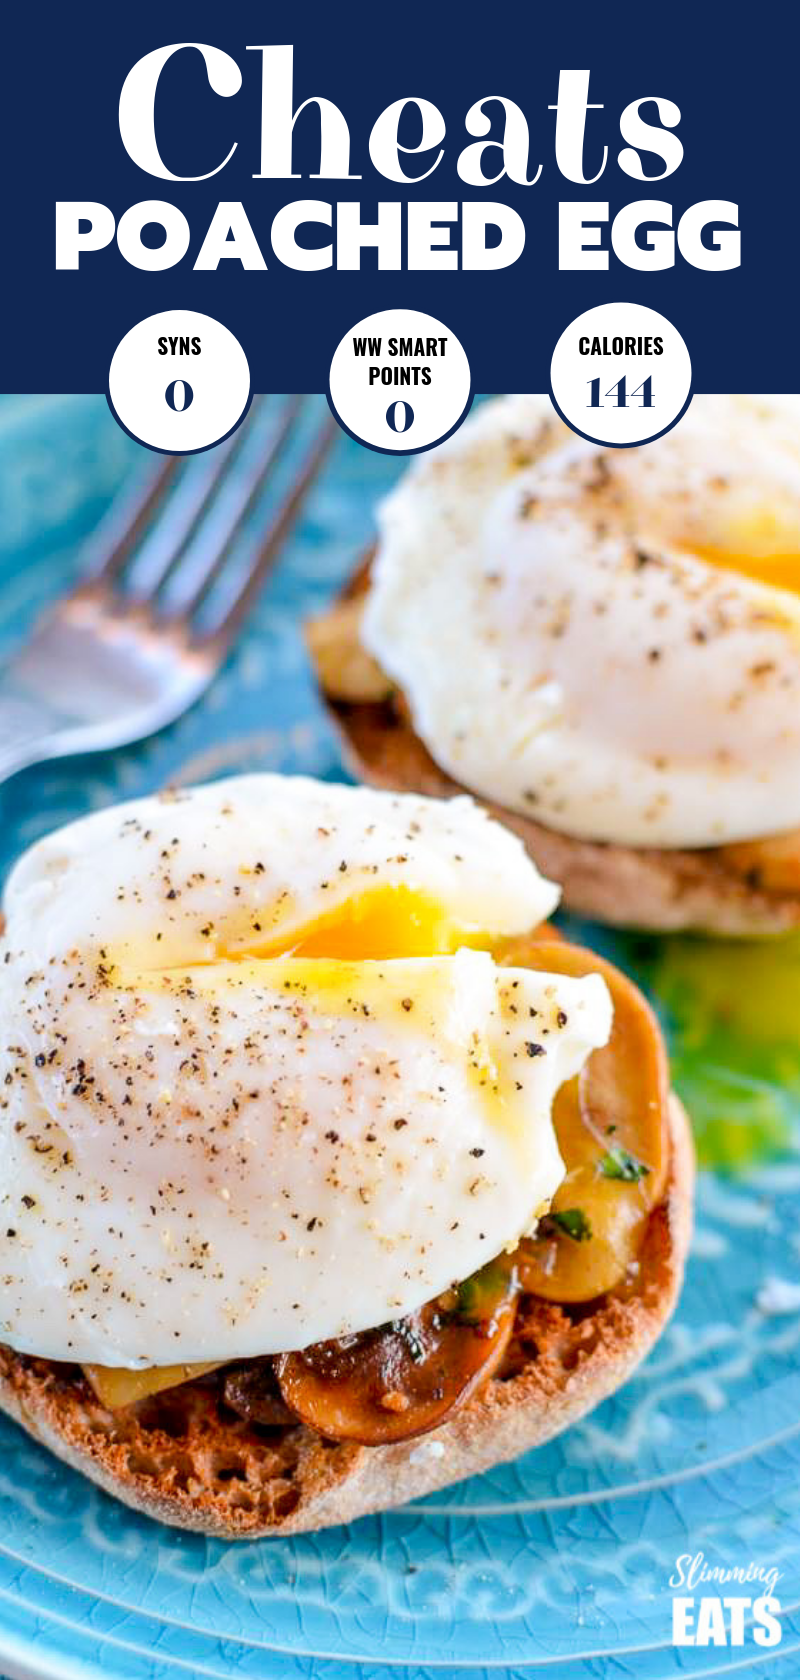 cheats poached eggs over mushrooms and whole wheat English muffins on a blue plate.